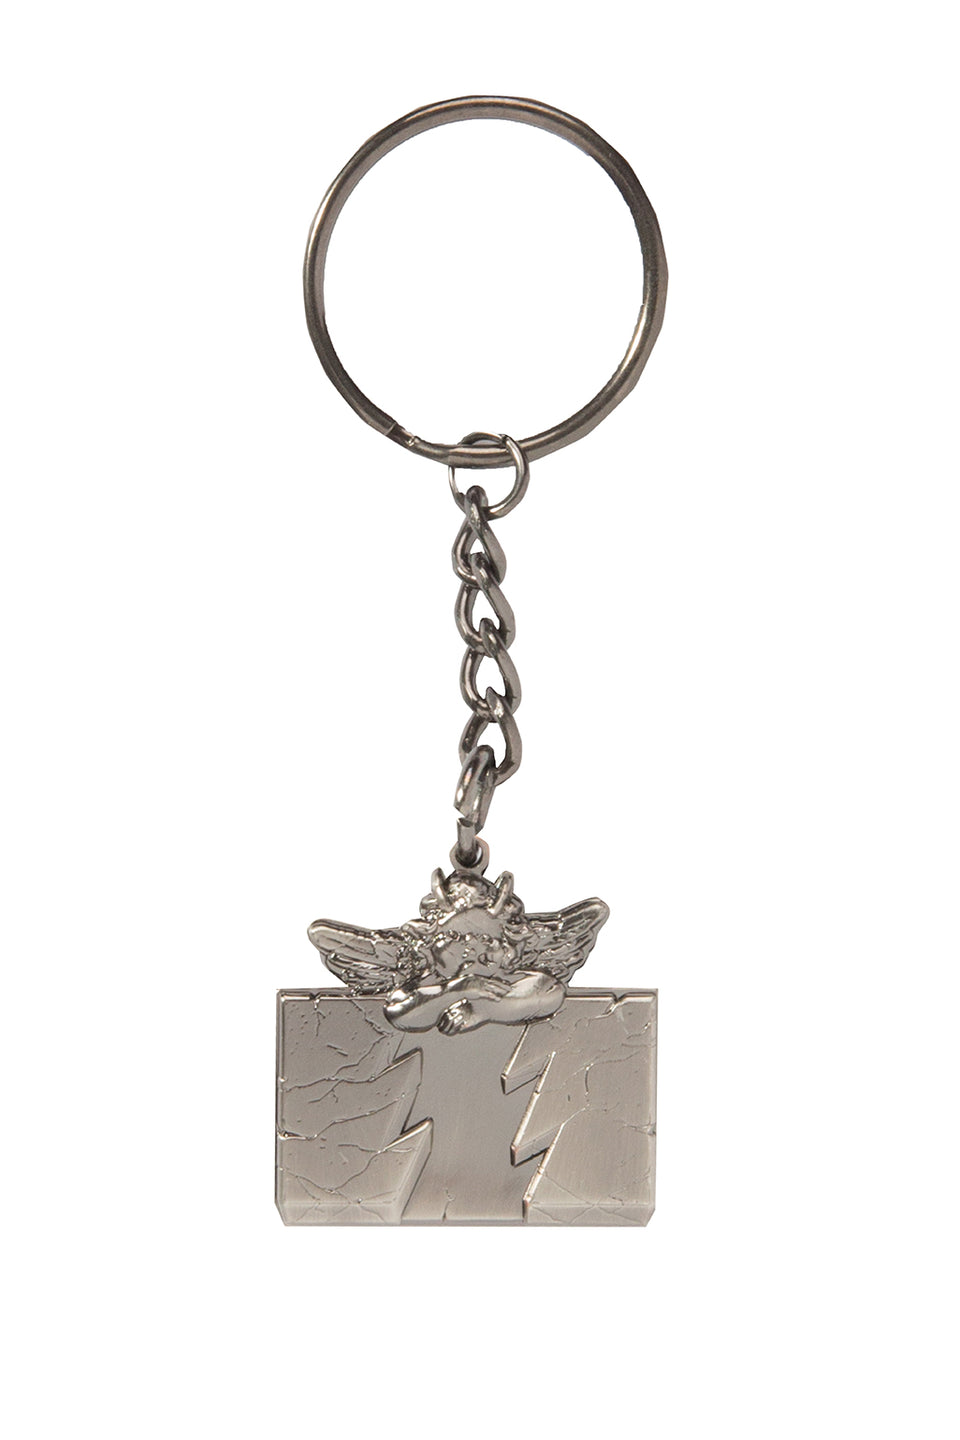 Cherub Key Chain